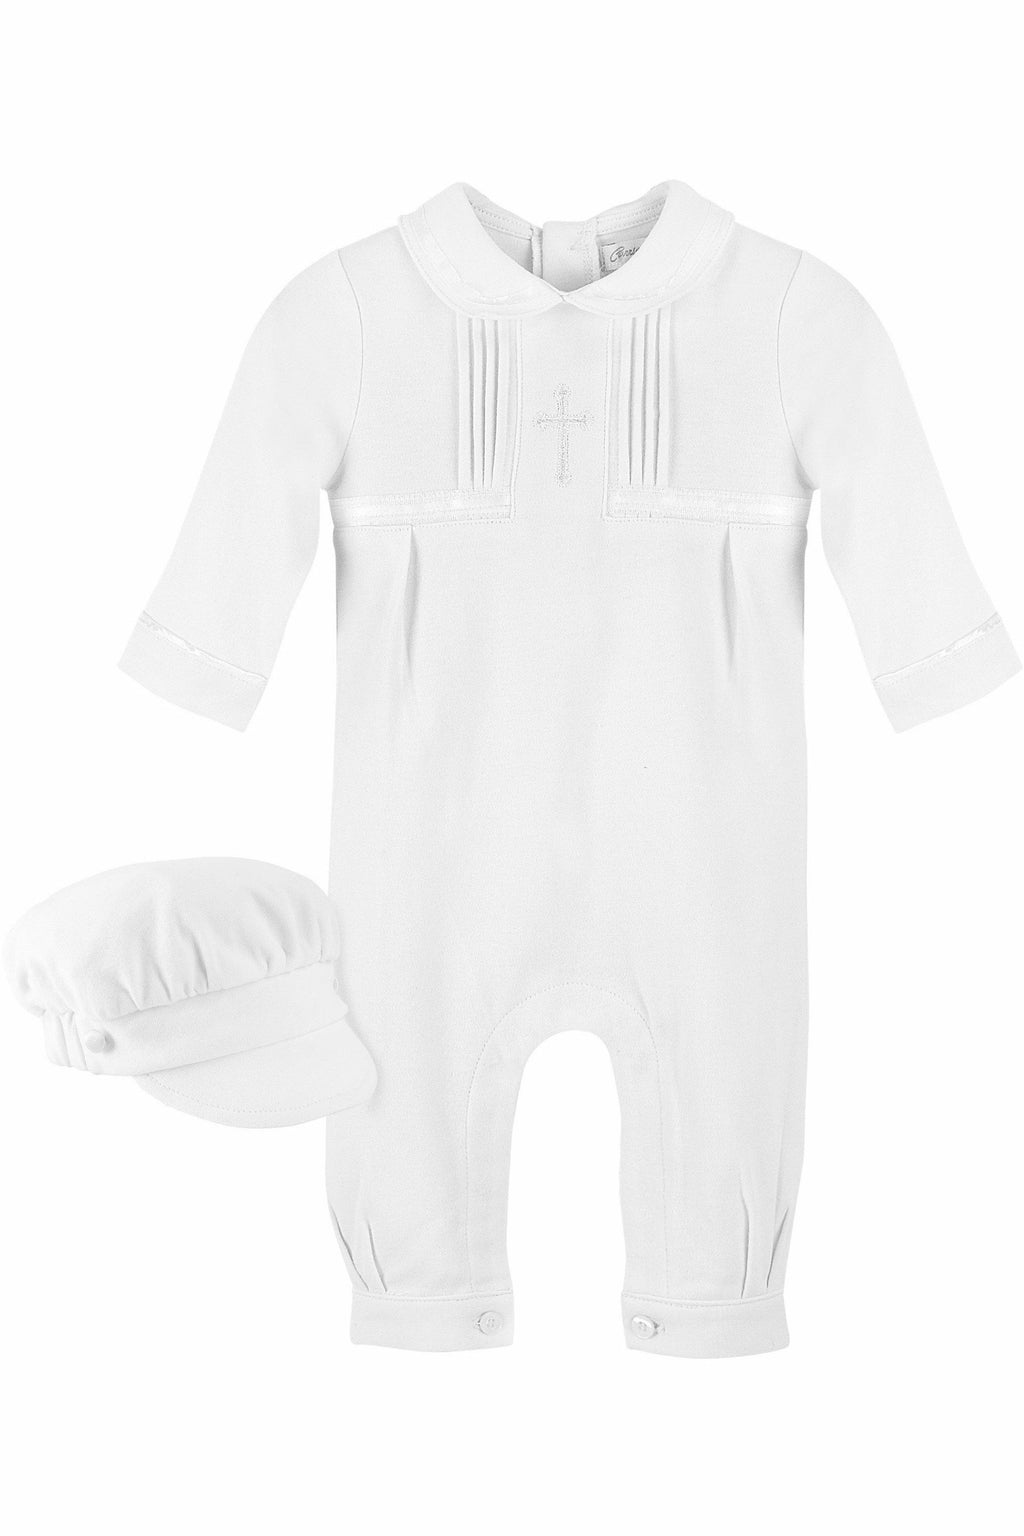 Elegant Baby Boy Christening Cross Outfit With Hat